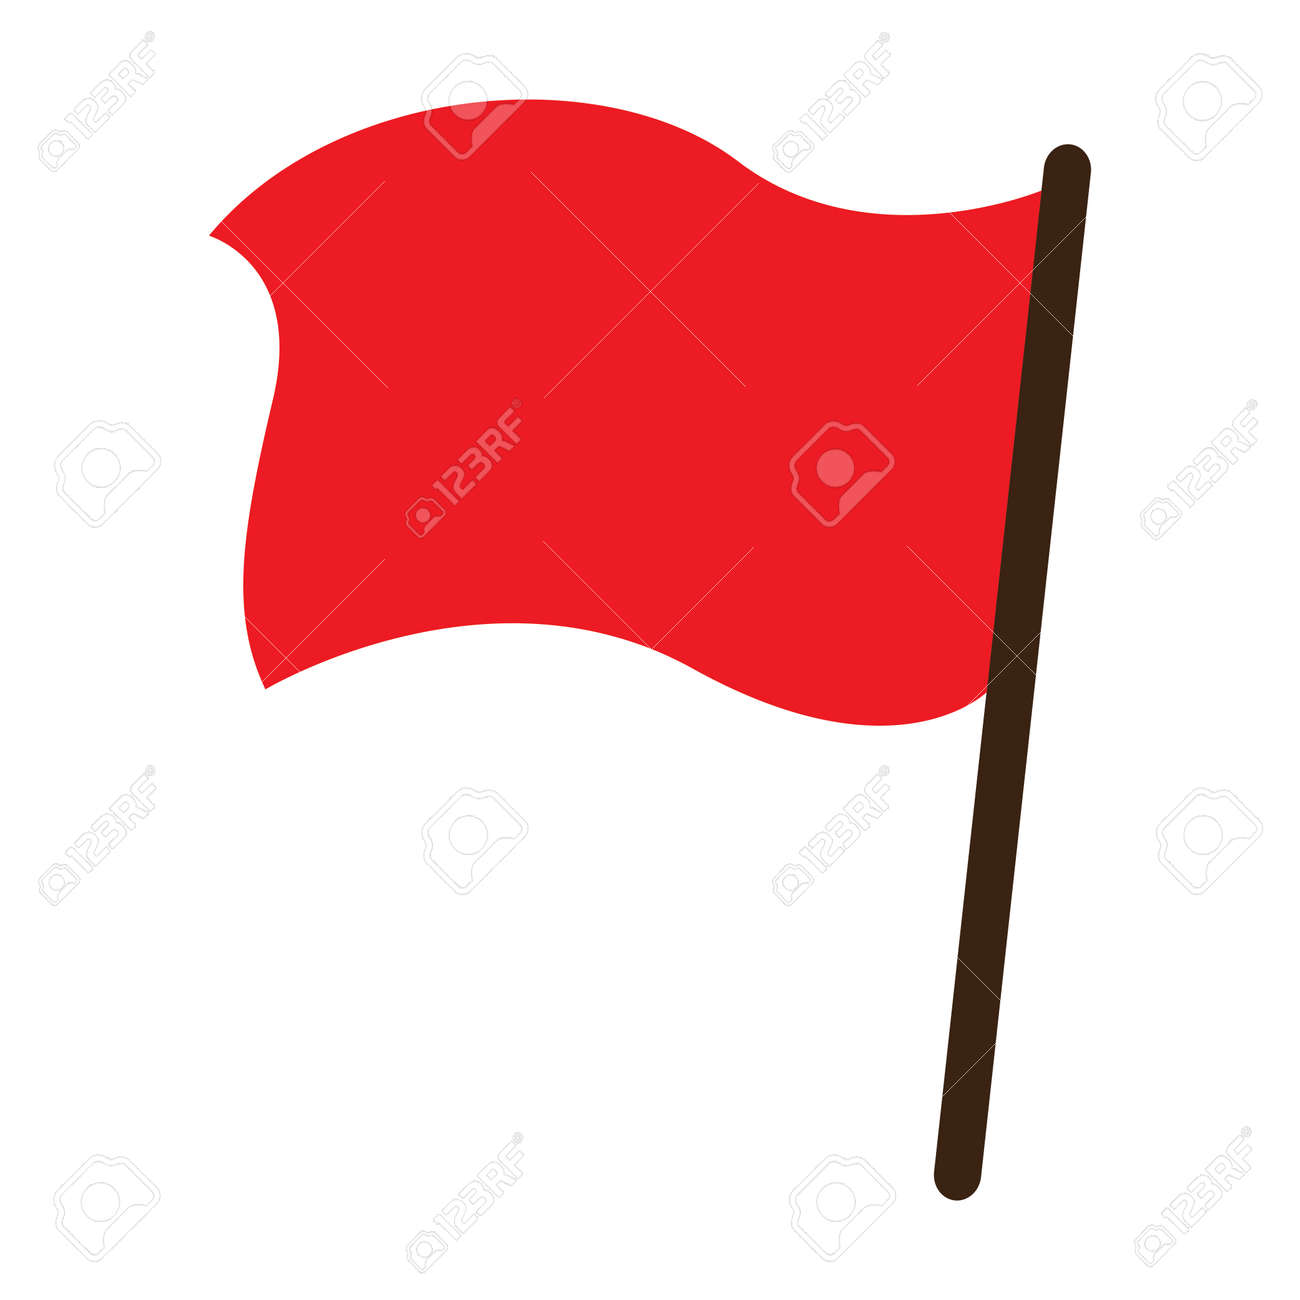 Red flag icon. Stock Vector - 88212895